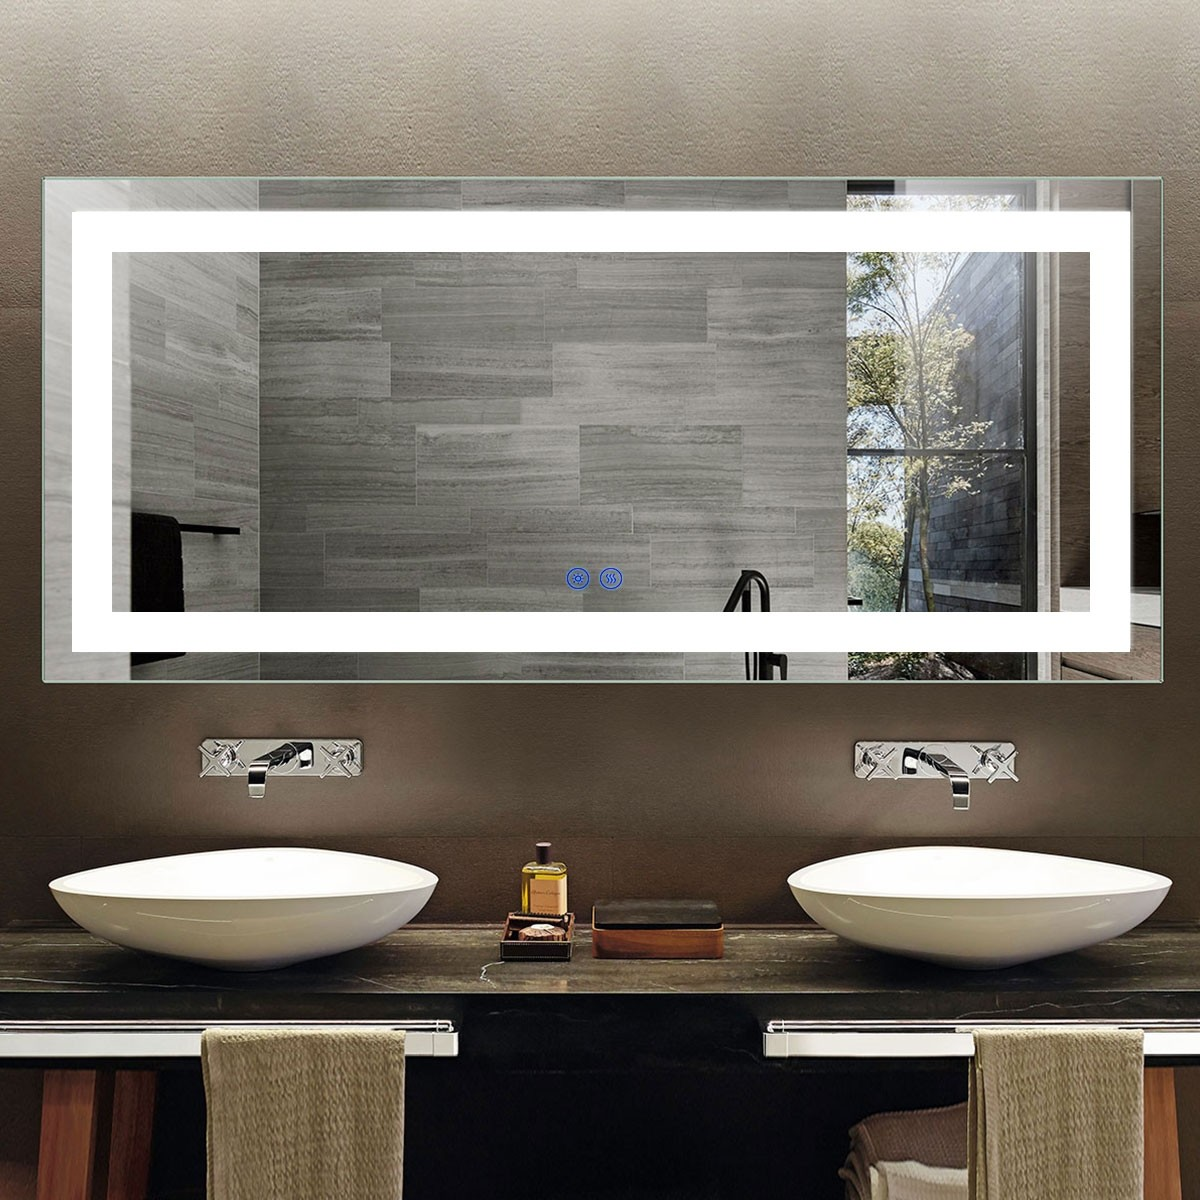 DECORAPORT 70 x 32 Inch LED Bathroom Mirror with Touch Button, Anti Fog, Dimmable, Vertical & Horizontal Mount (CT02-7032)